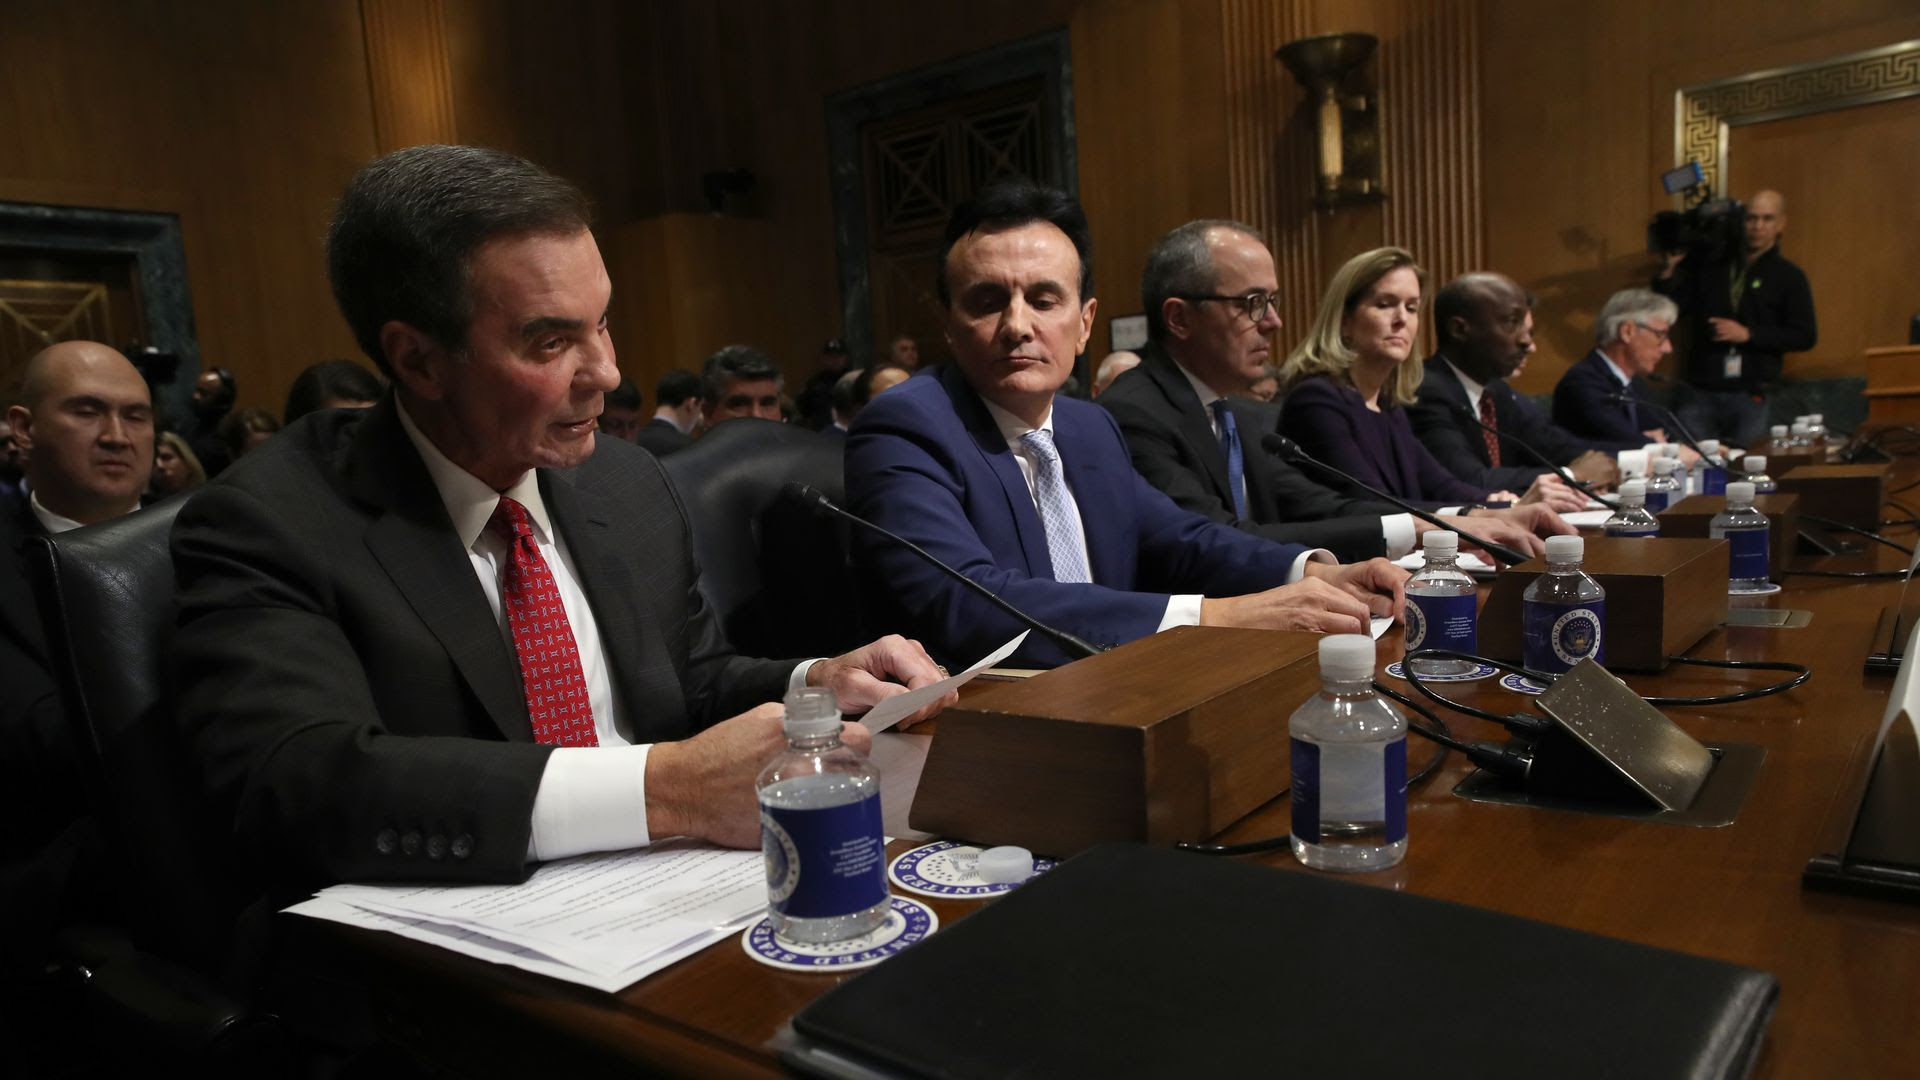 Pharma CEOs, including AbbVie's Richard Gonzalez, testify on Capitol Hill. Photo: Win McNamee/Getty Images